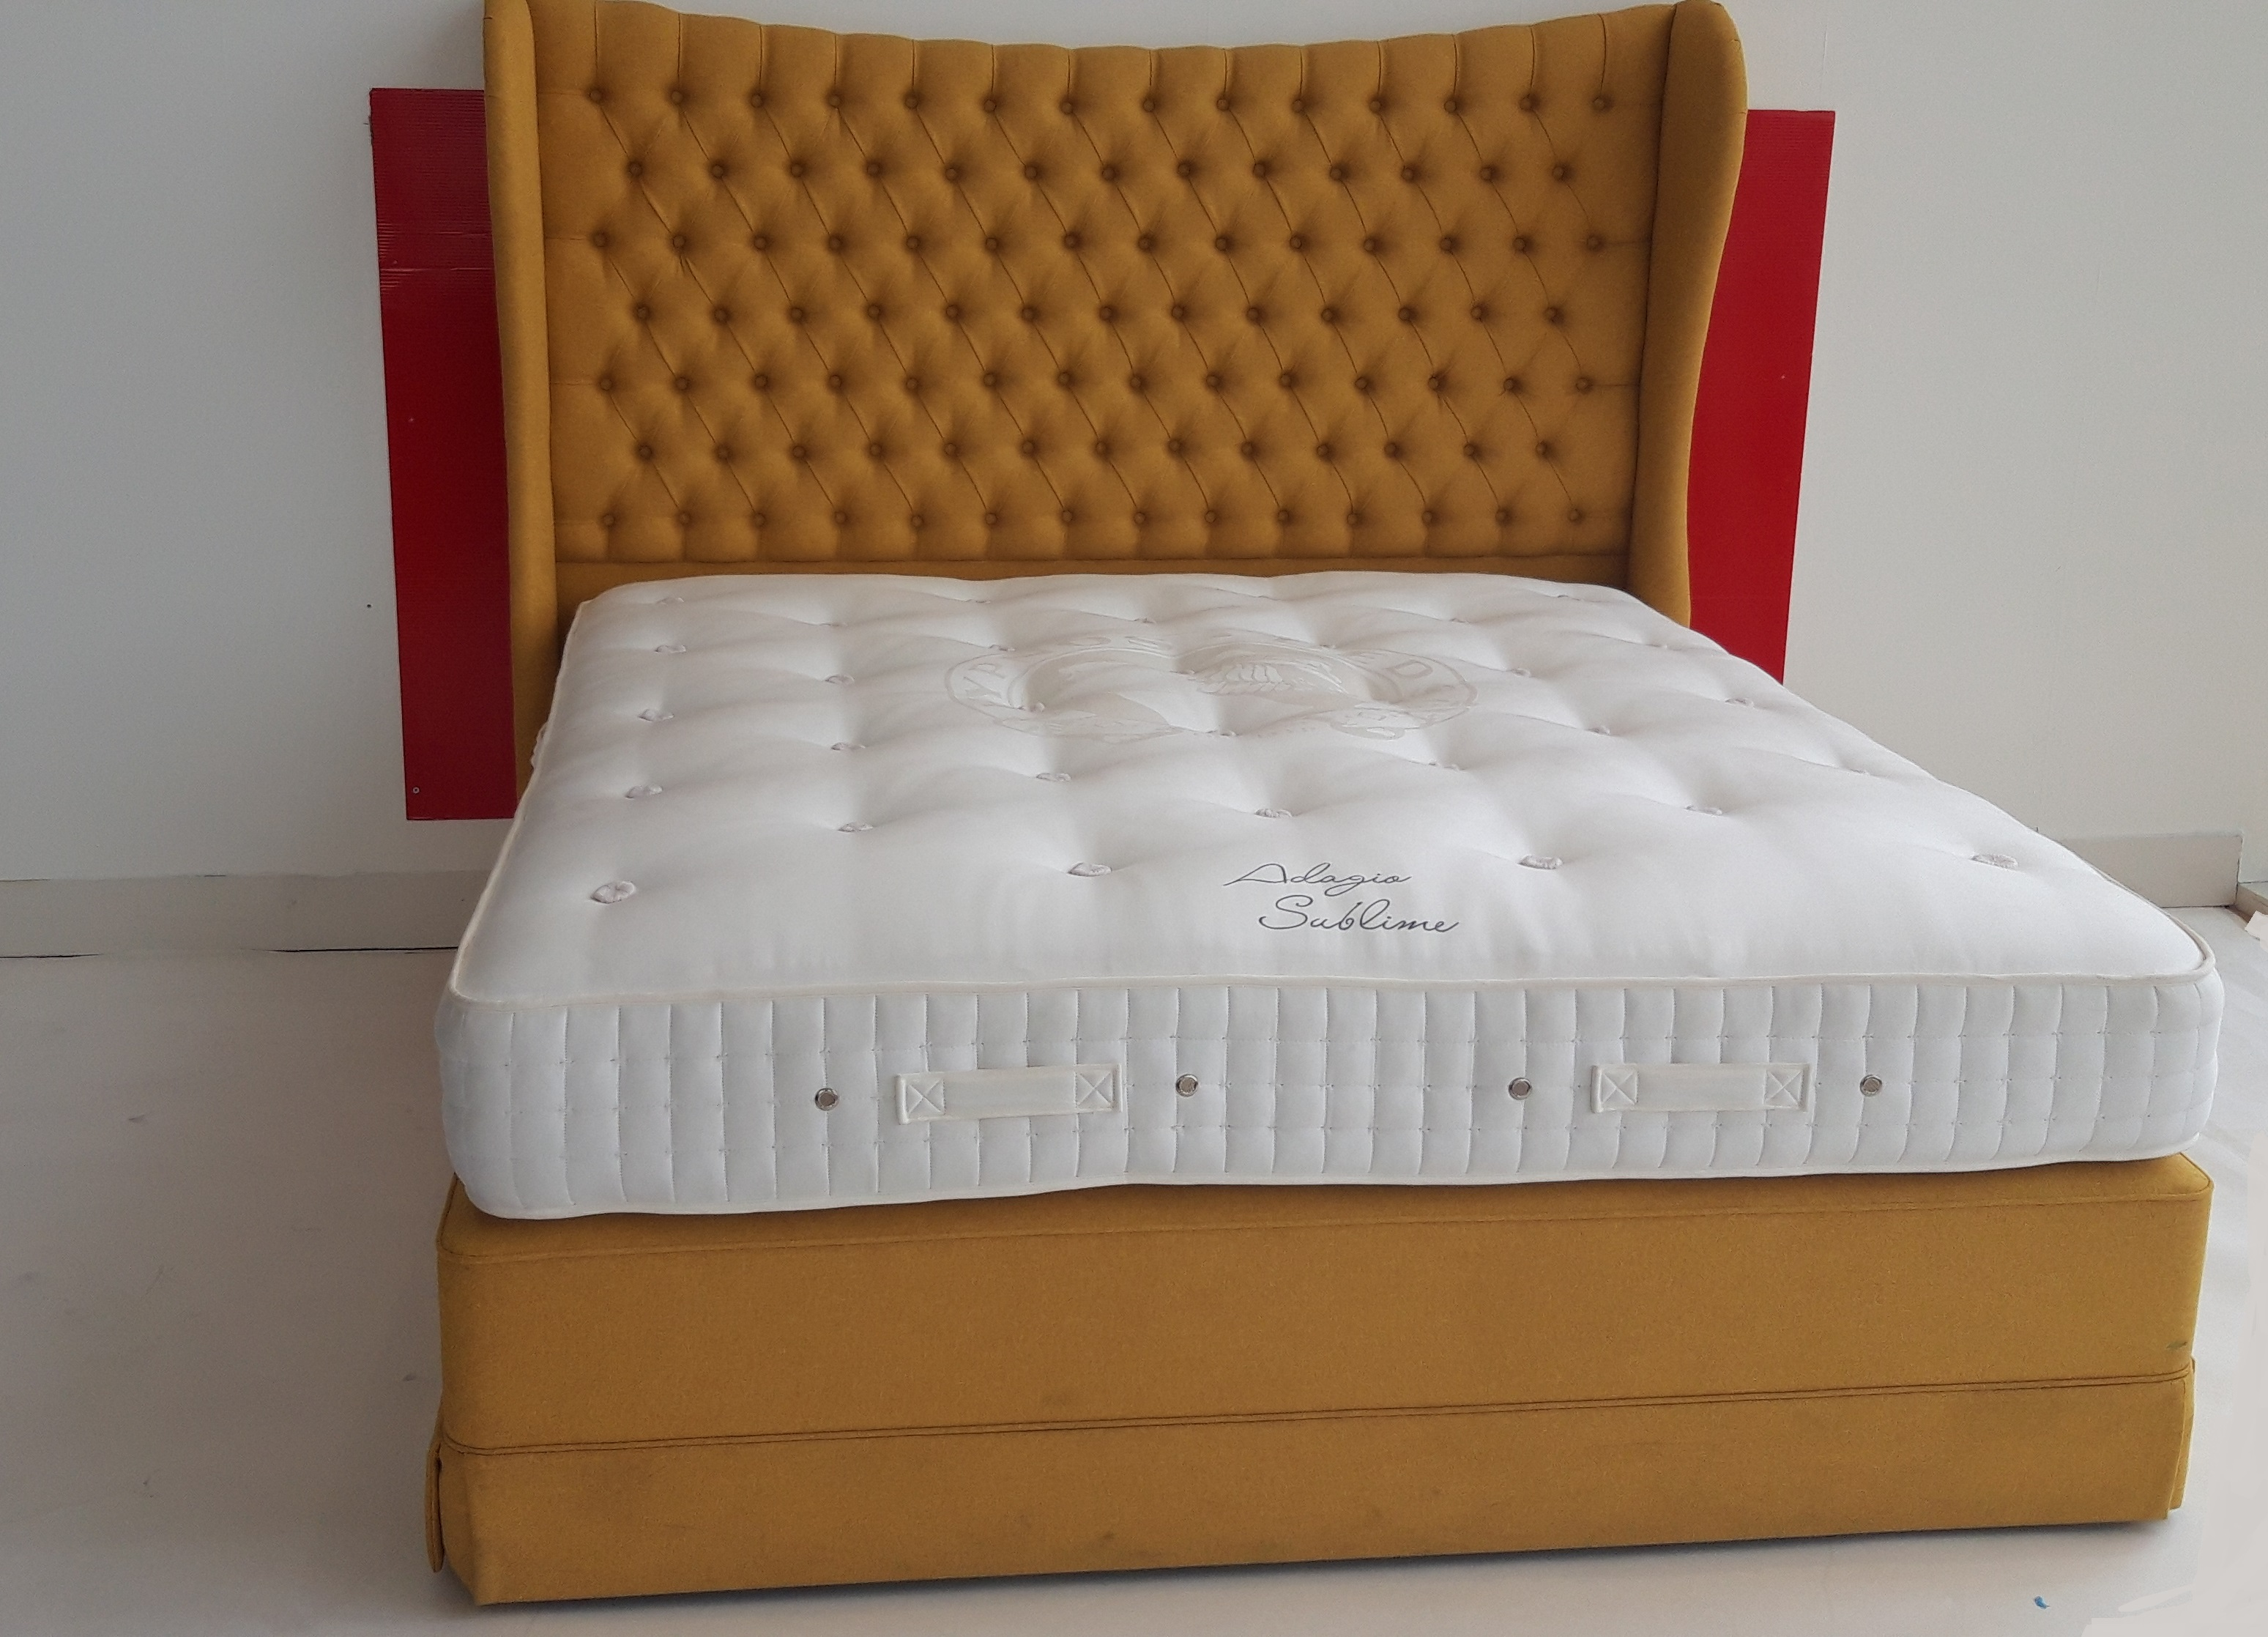 Adagio 6ft Pocket Sprung Sublime Mattress, Divan & Headboard Set - OUTLET